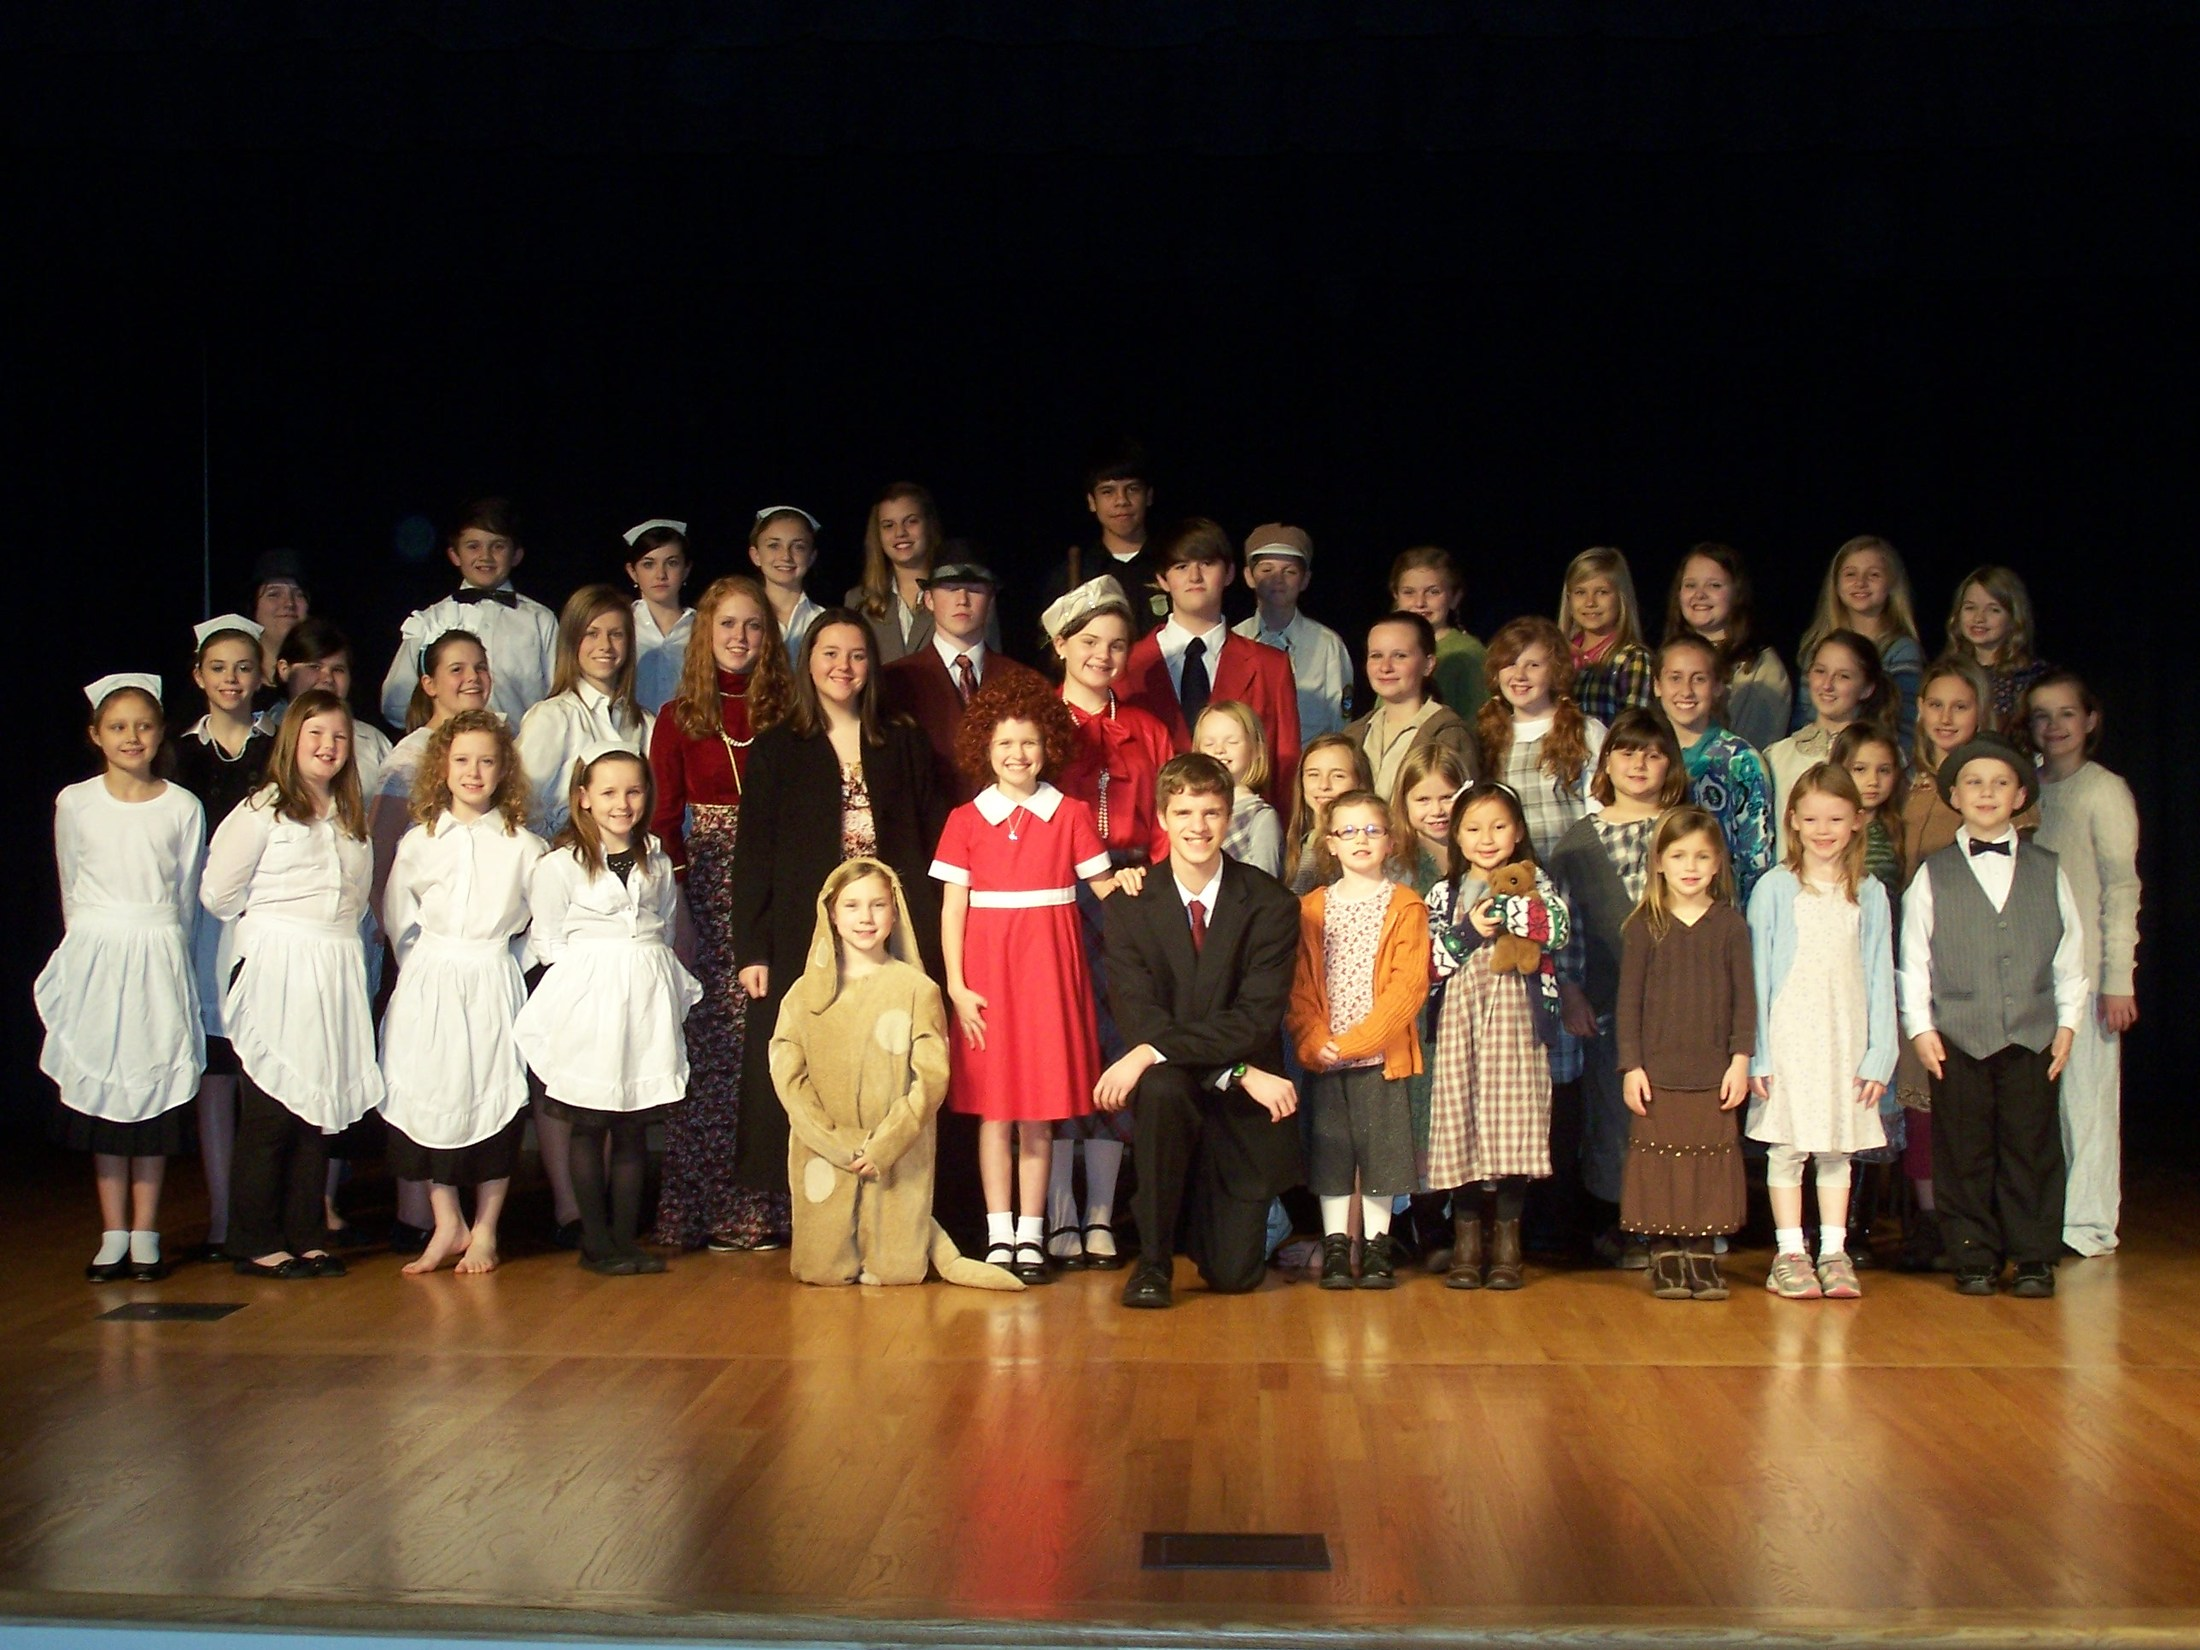 Cast photos from the 2015 Children's Theatre Production of